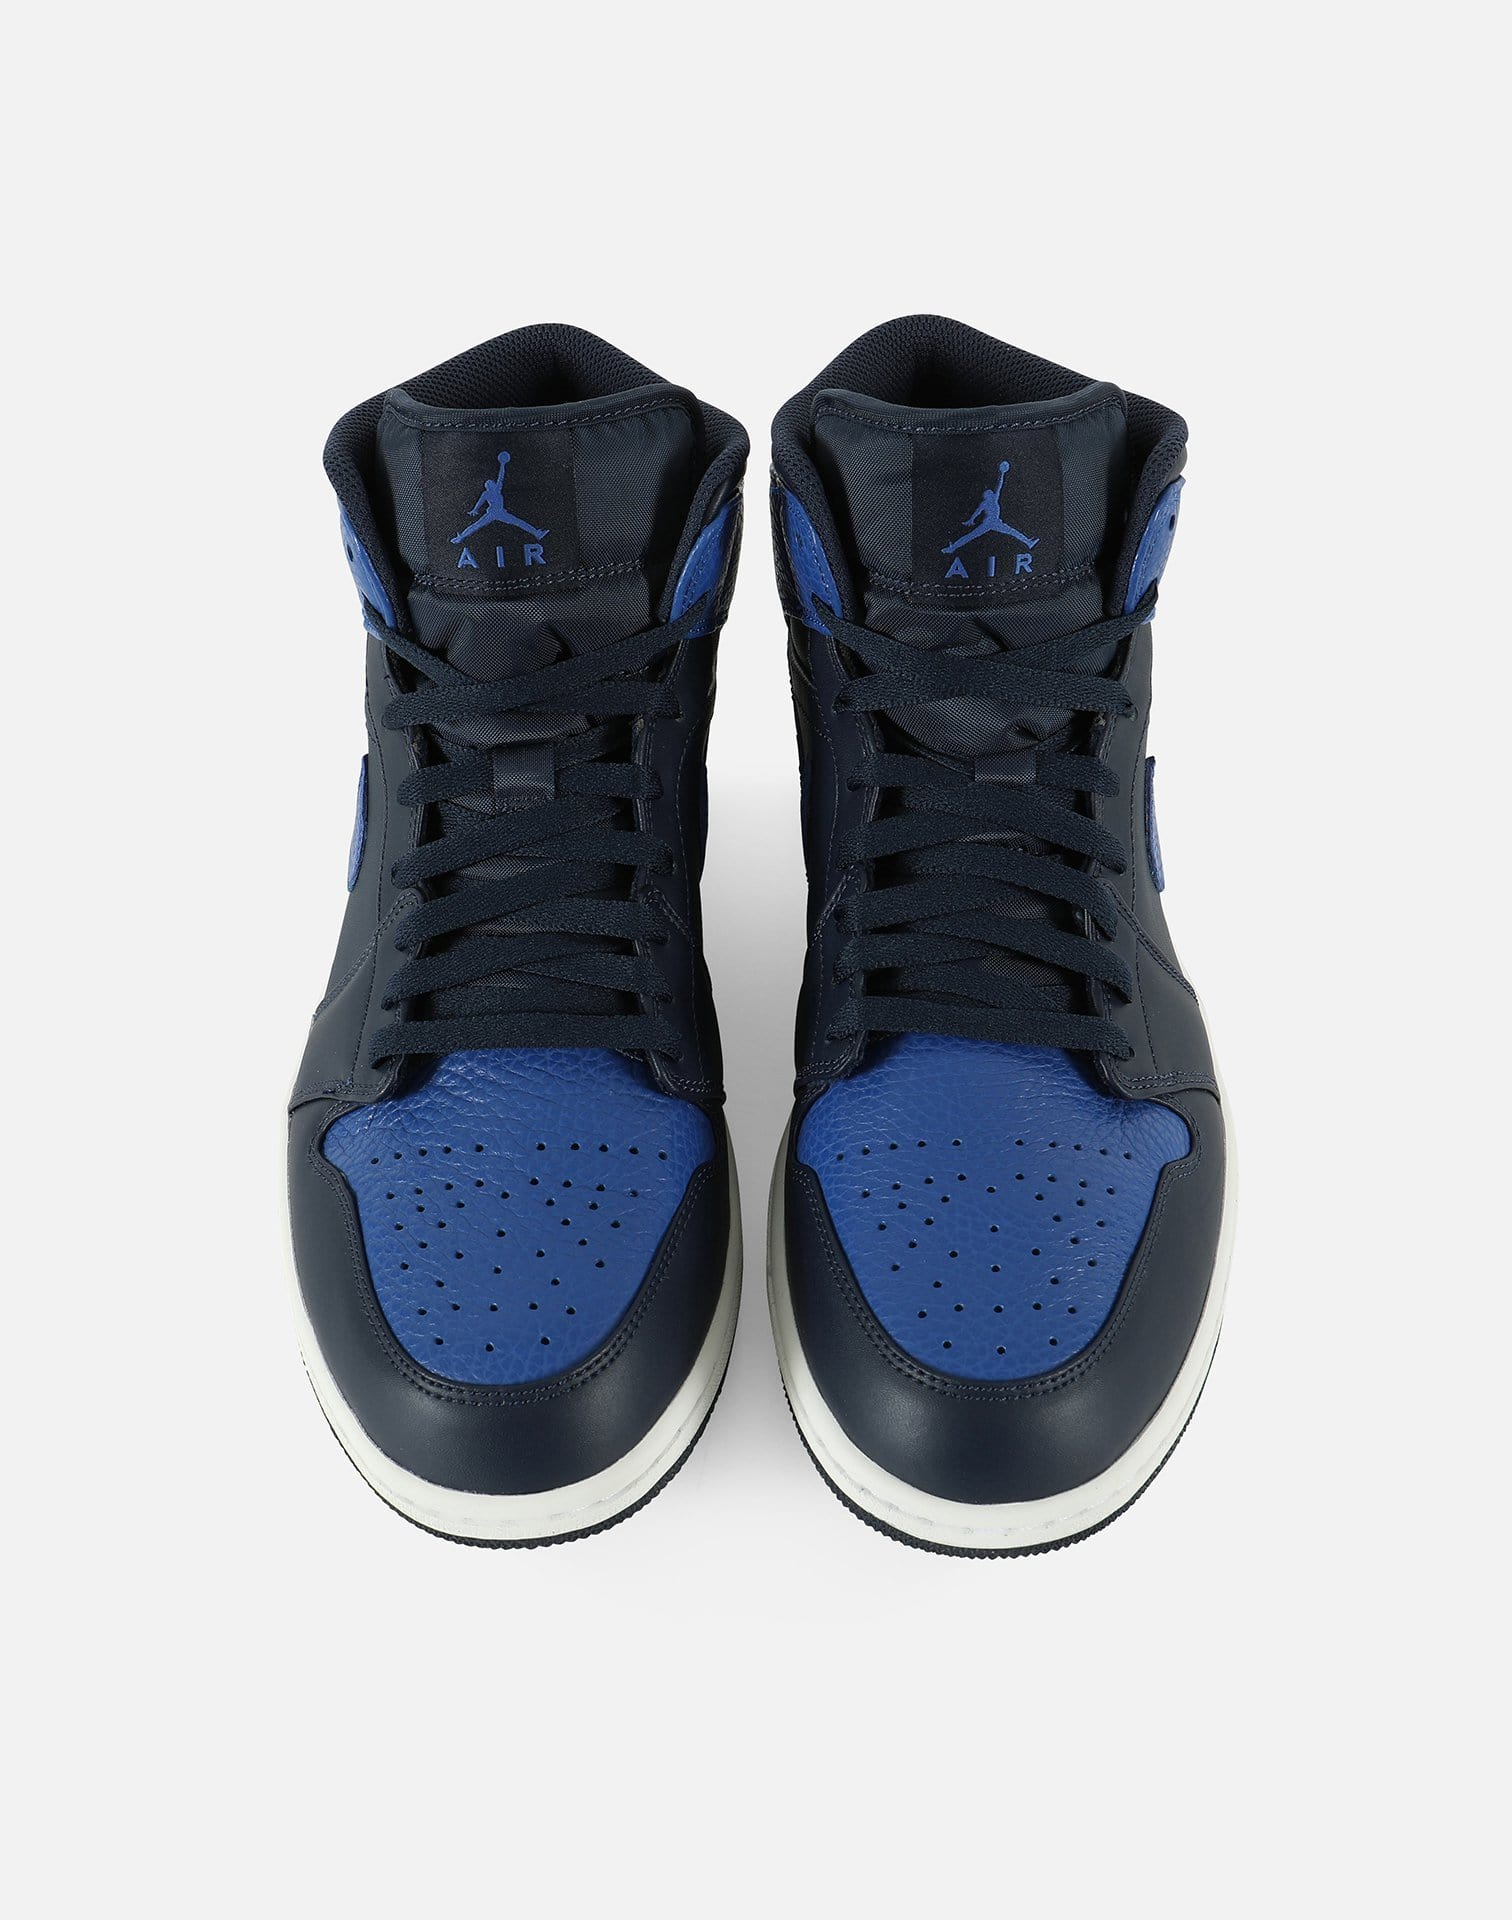 Jordan Men's Air Jordan Retro 1 Mid